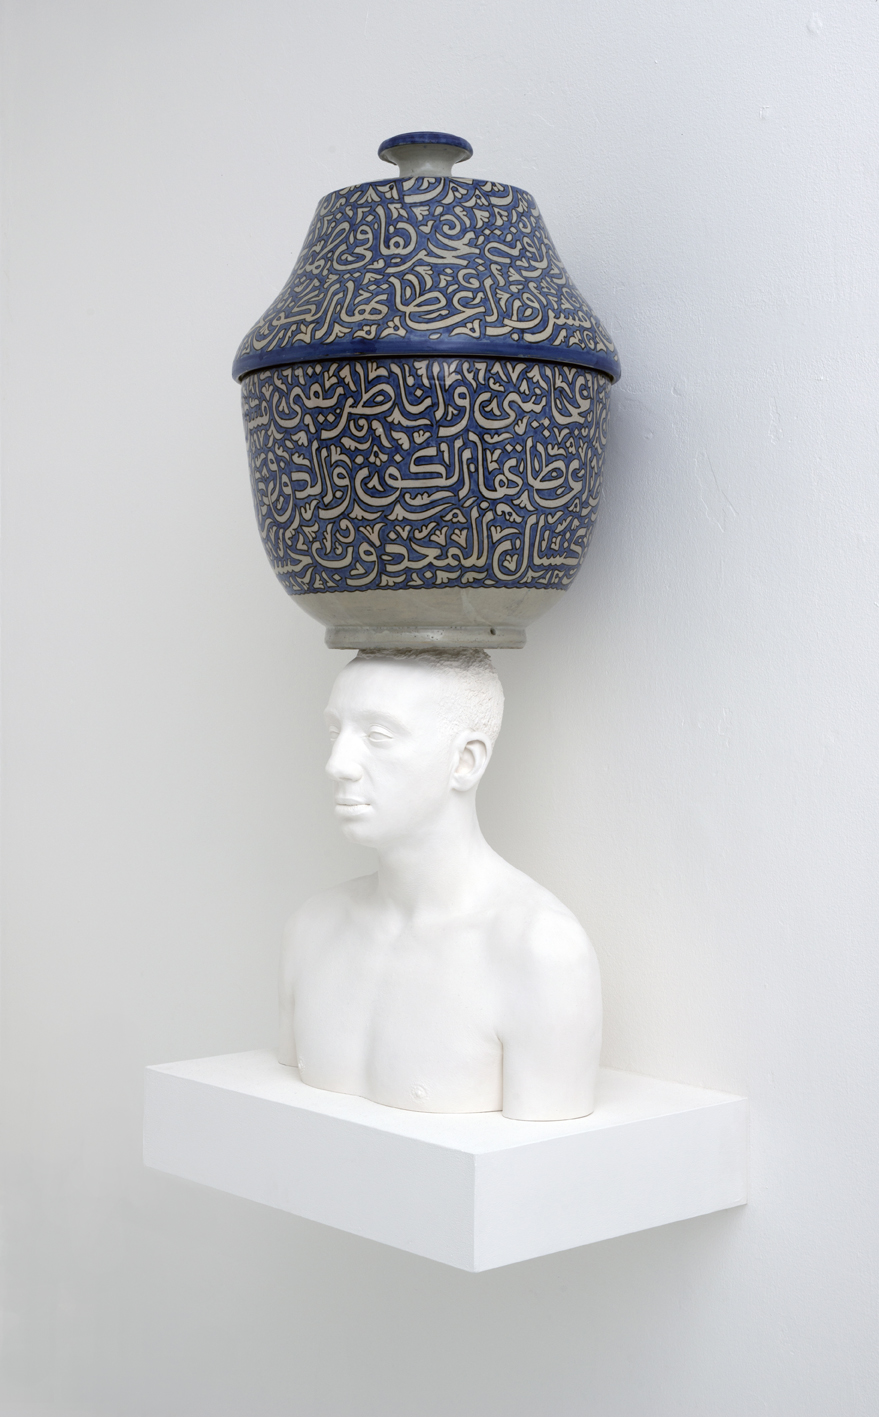 Mehdi-Georges Lahlou, Equilibre au Vase, 2012 - Courtesy the artist and Rabouan Moussion Gallery Paris